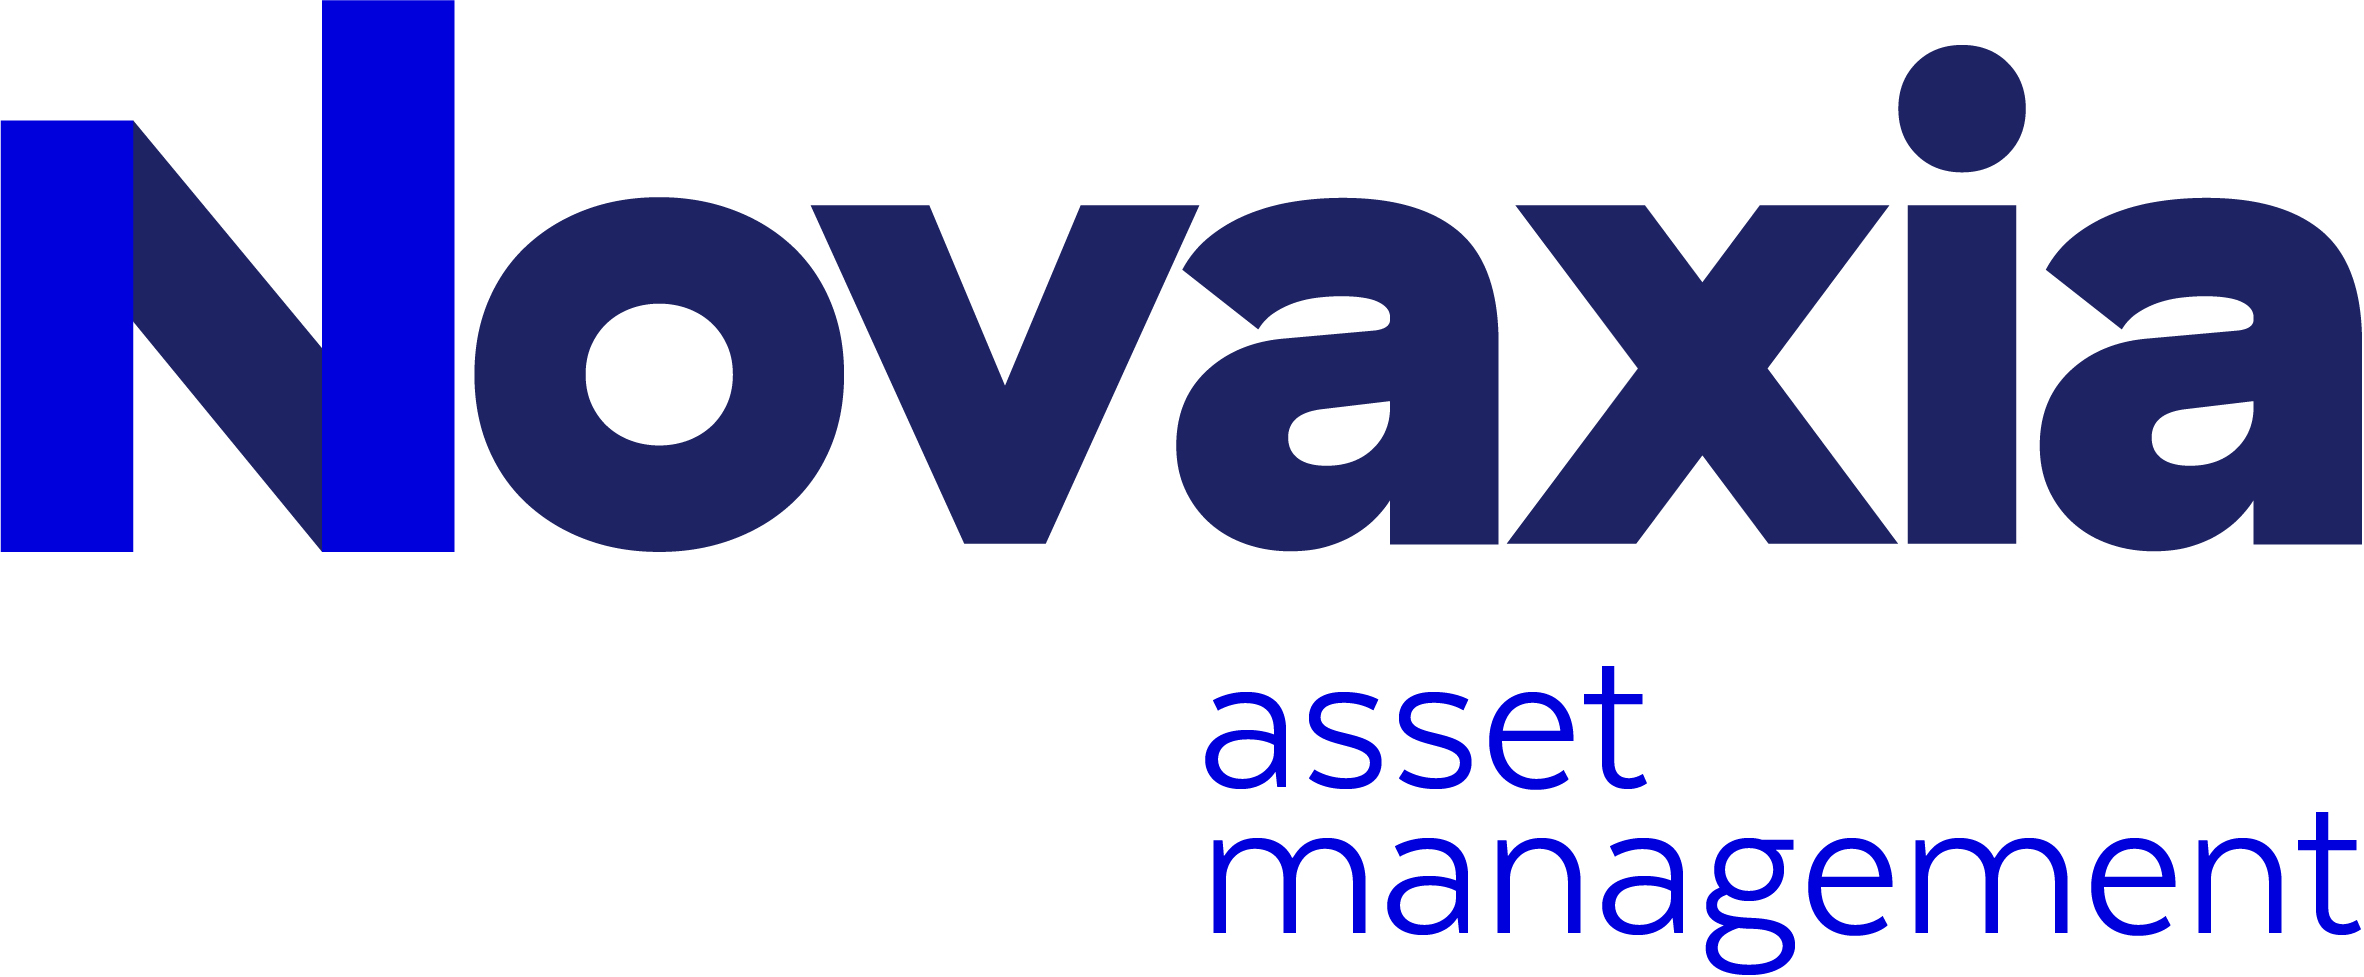 novaxia asset management